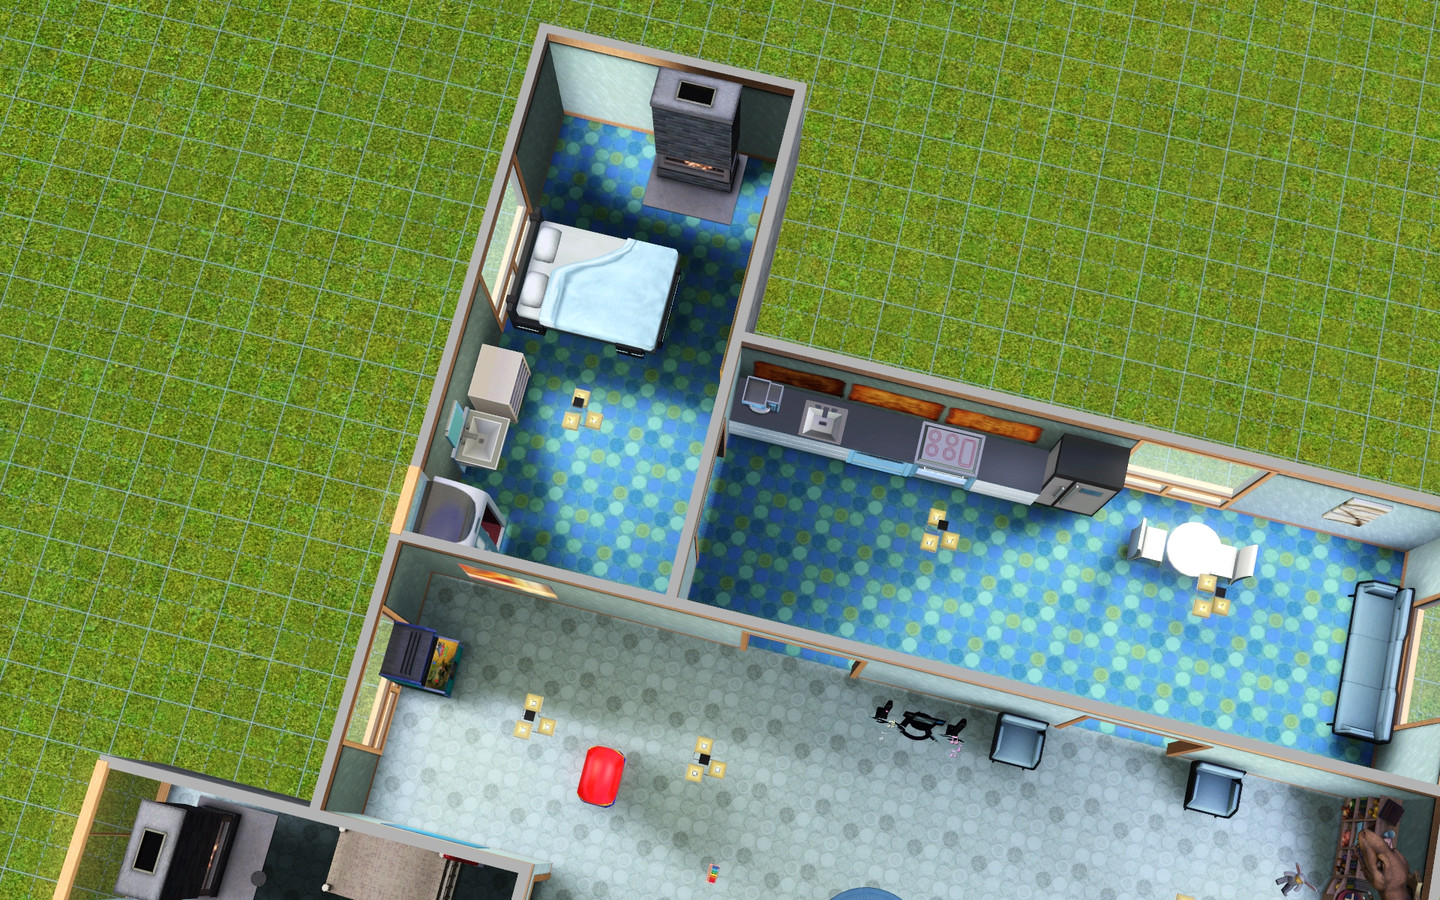 The sims 3 mods nraas download - toyoupolar